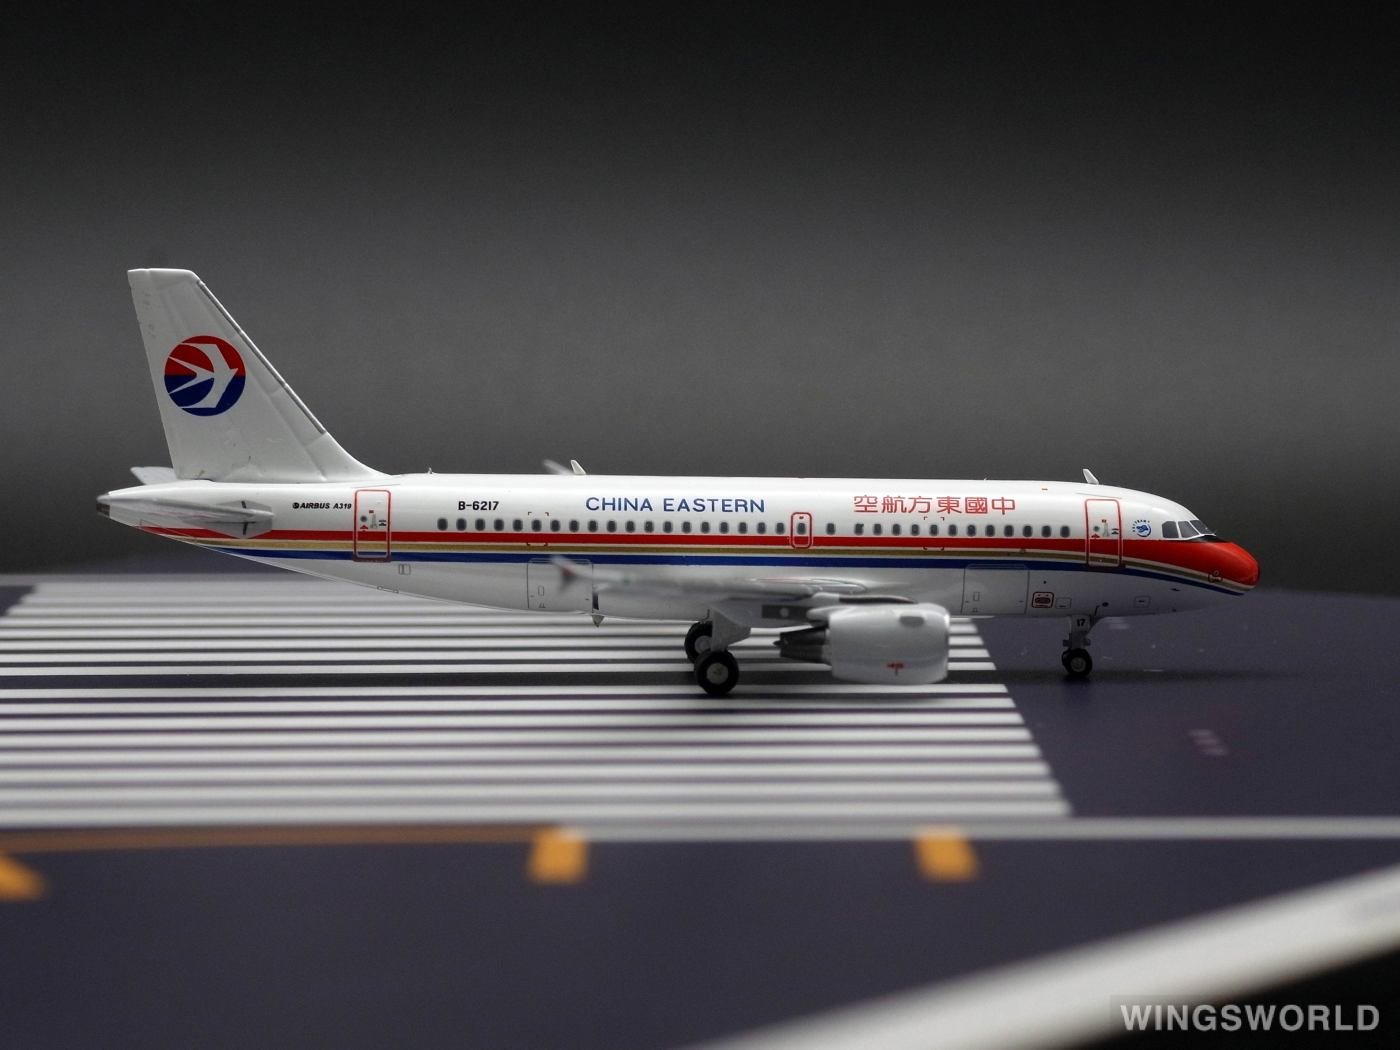 Pandamodel 1:400 PM-B-6217 China Eastern 中国东方航空 Airbus A319 B-6217